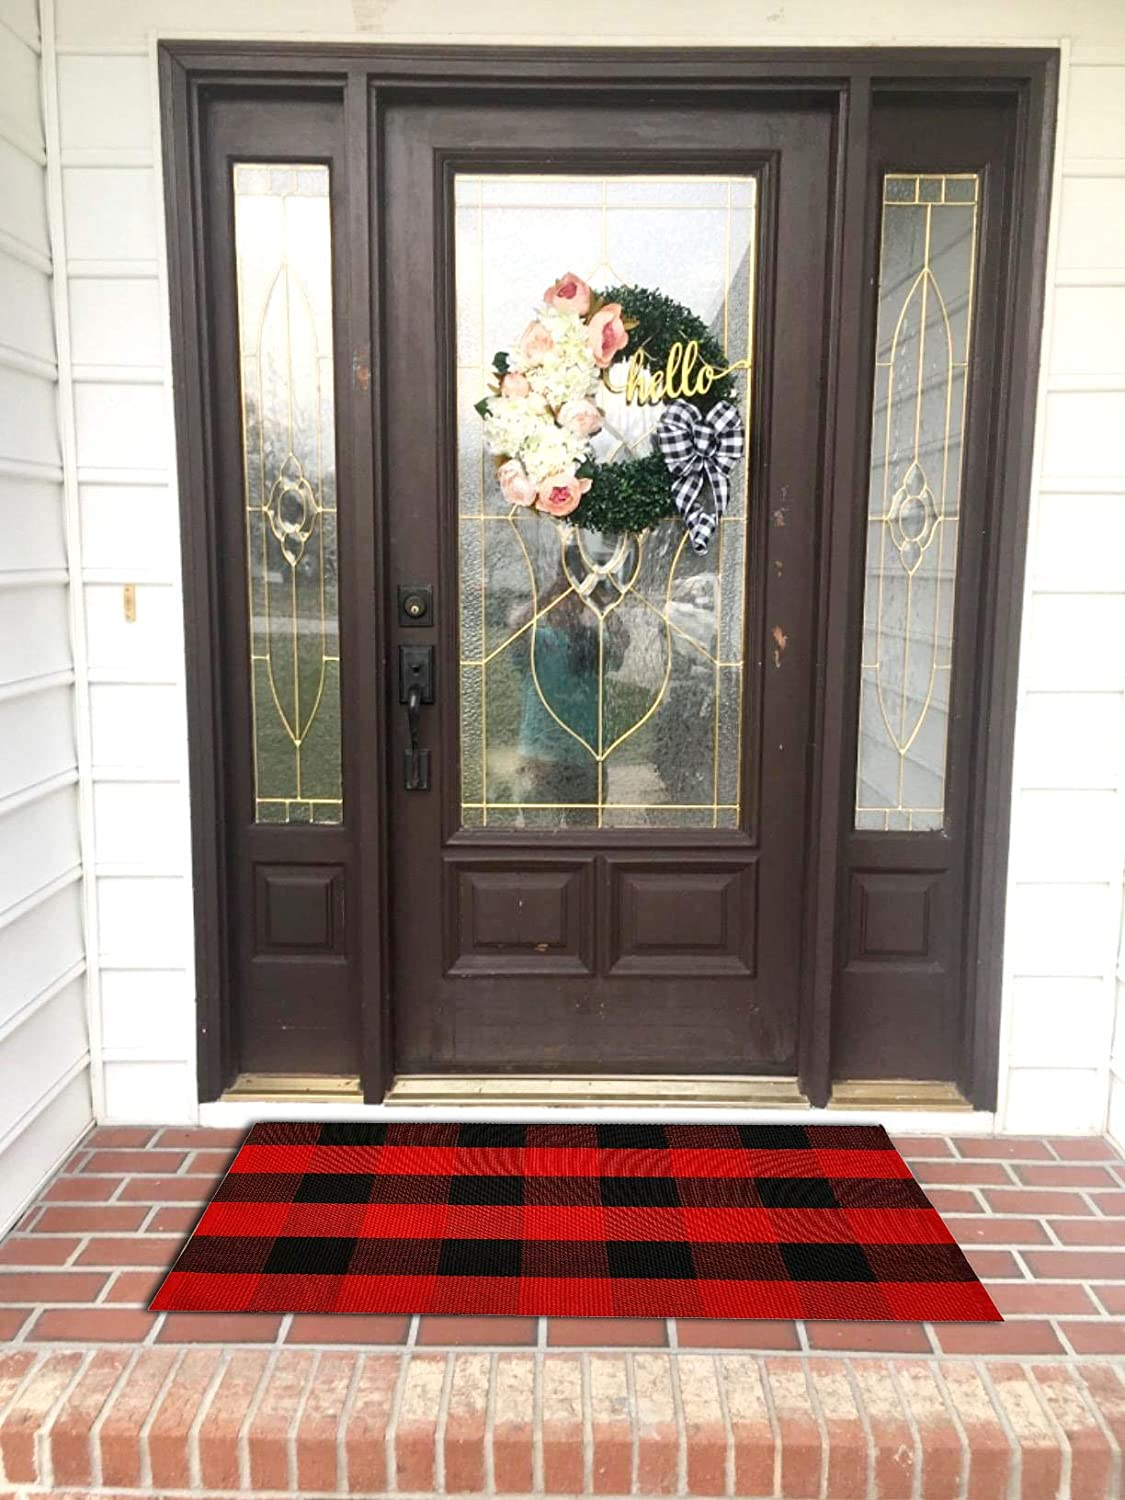 Mesa Mall Ukeler Buffalo Plaid Outdoor Popular Rugs and Cotton Washable- Black Red